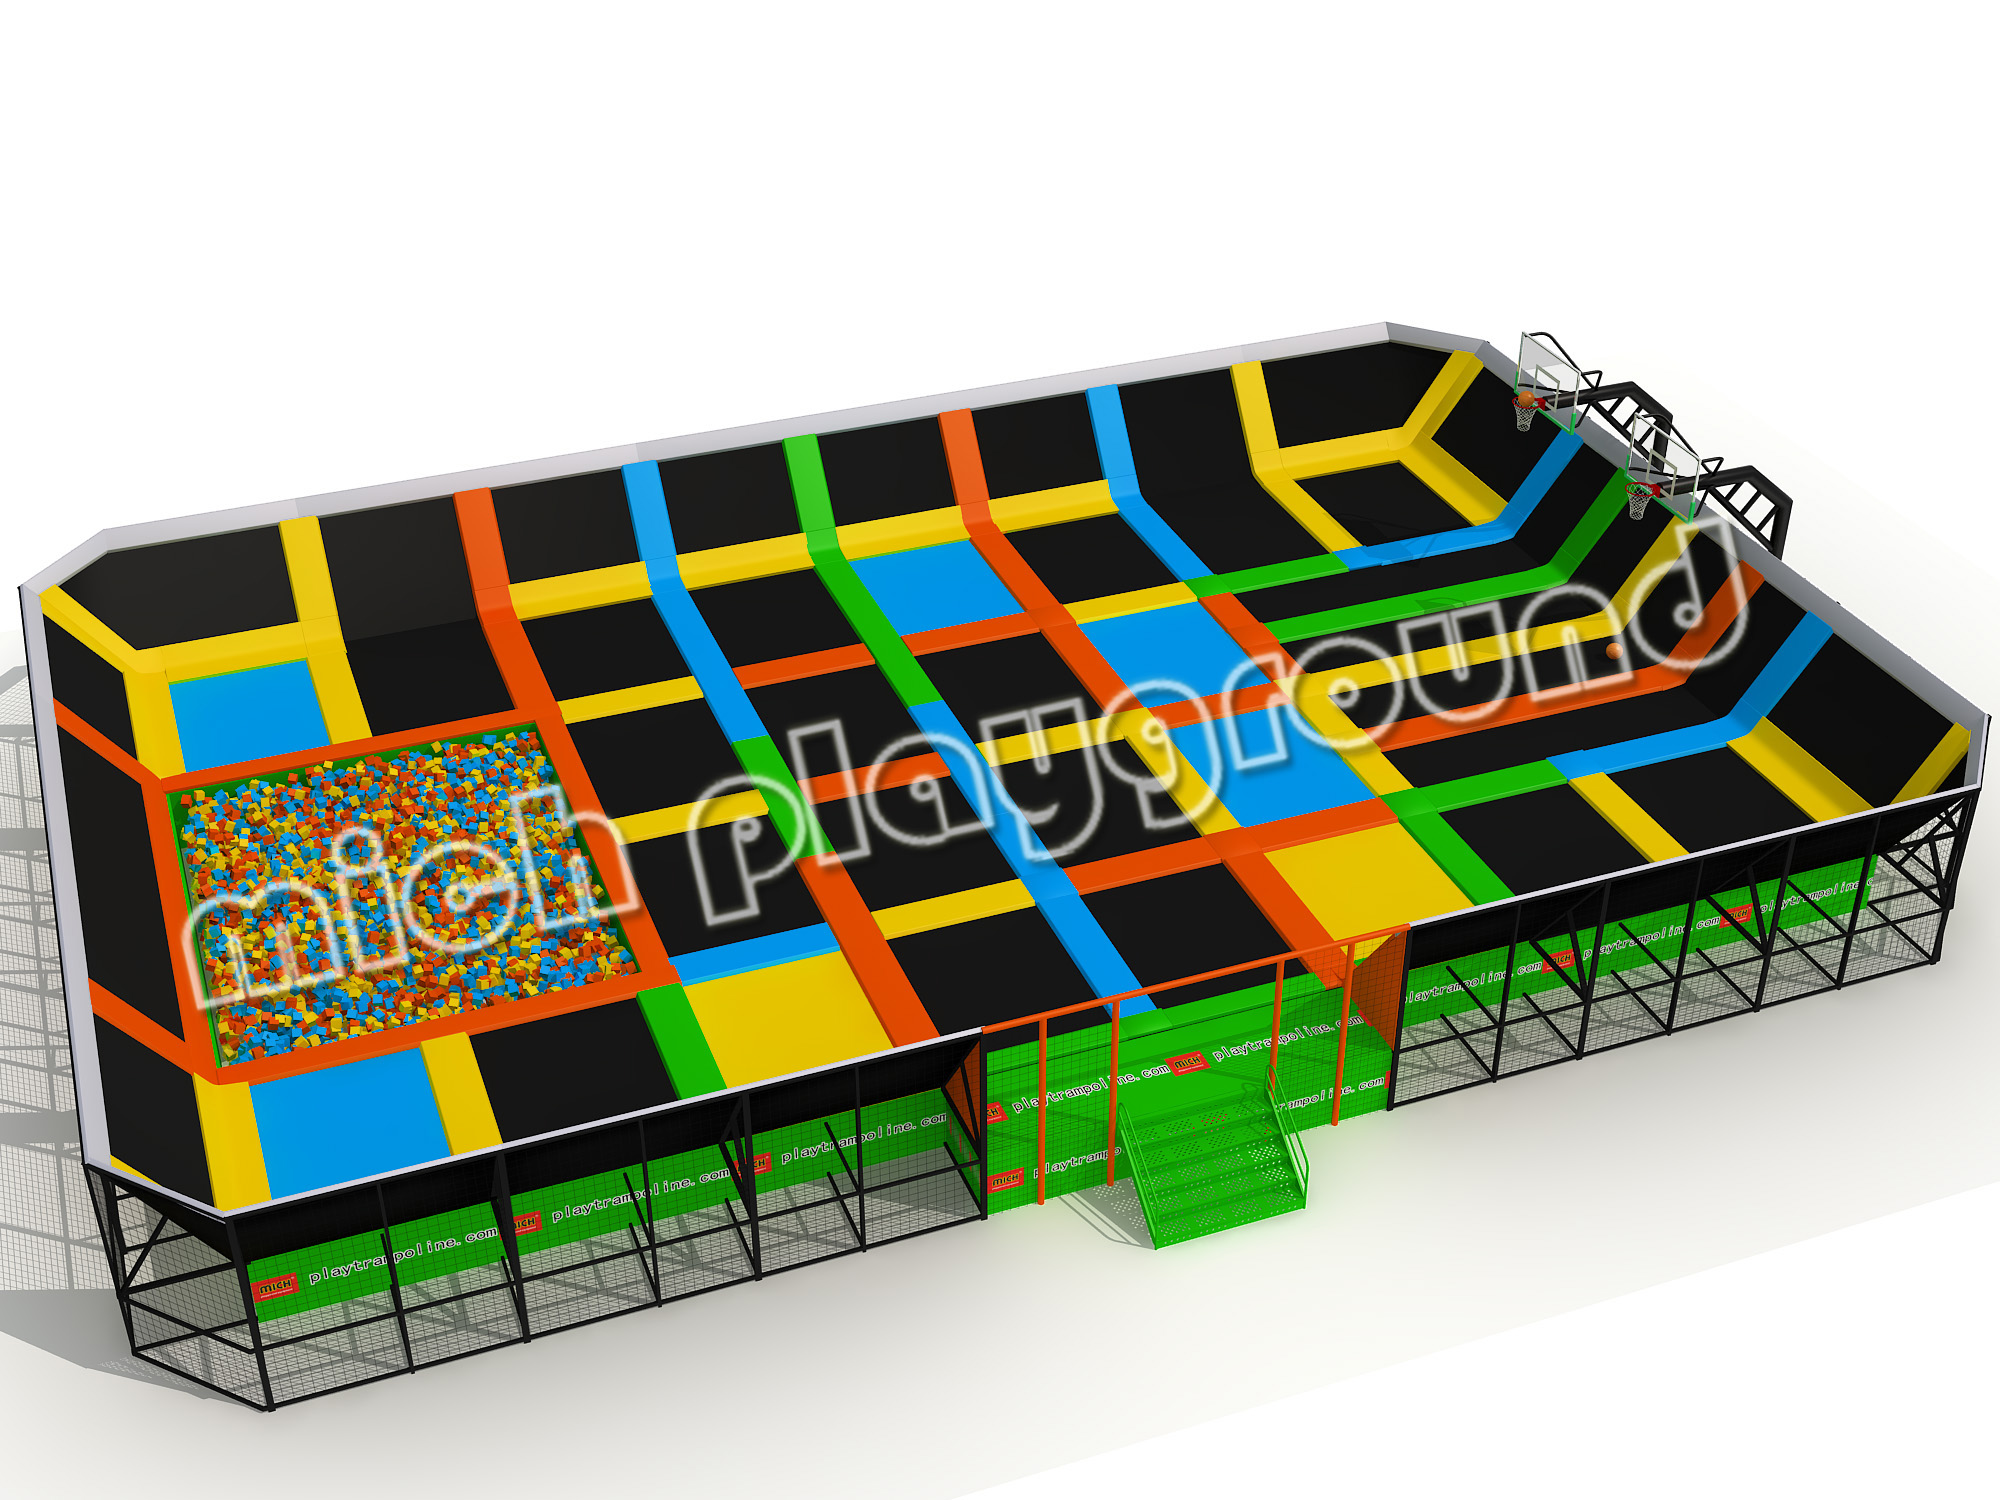 MICH Indoor Trampoline Park Design for Amusement 5110A